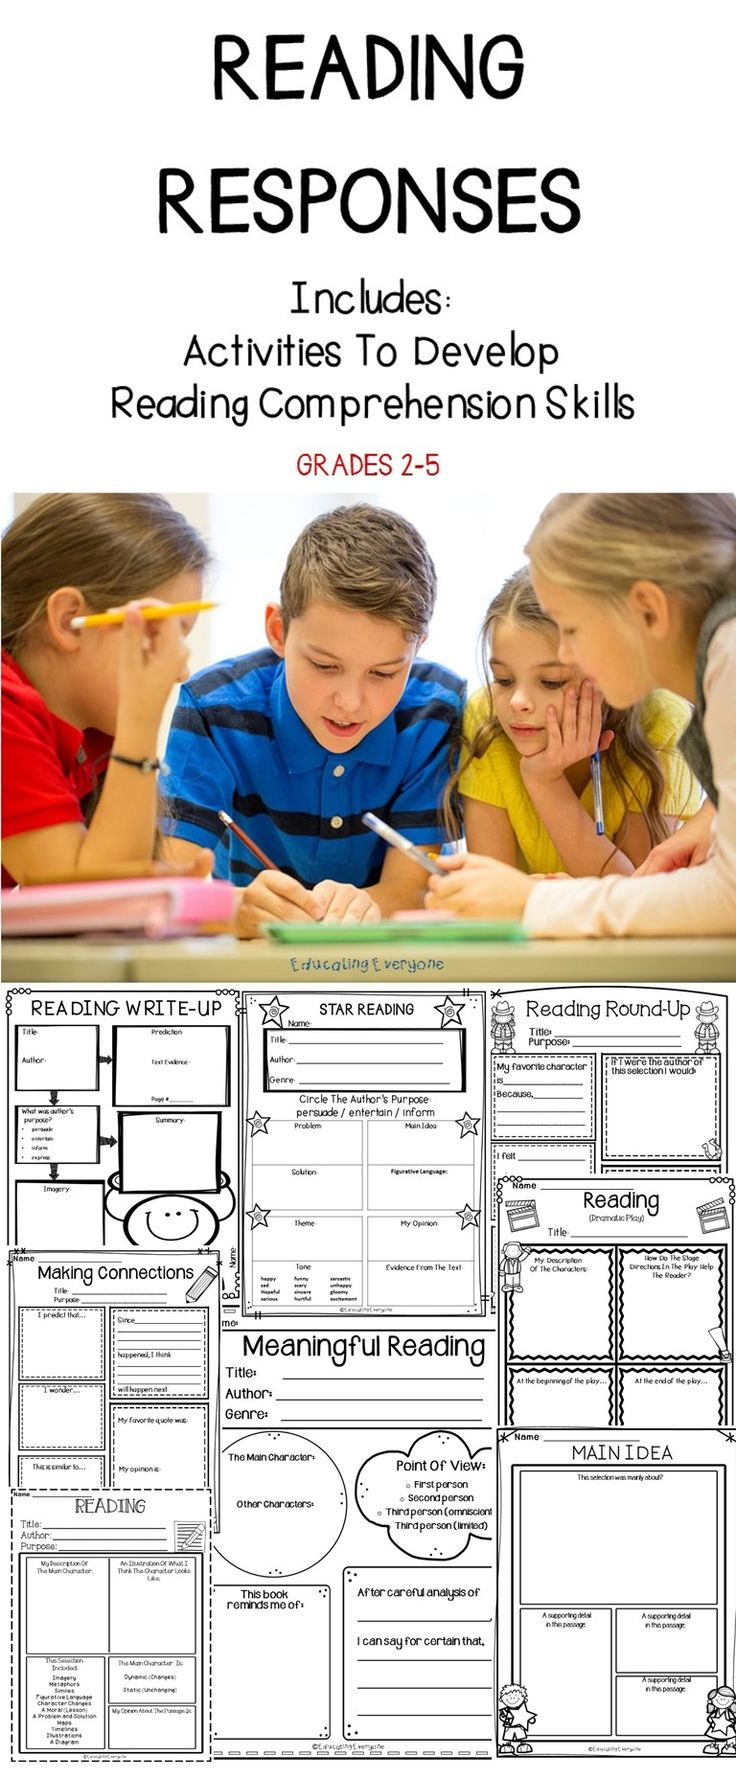 READING COMPREHENSION - These reading responses are a great tool to help students improve and develop their comprehension skills.